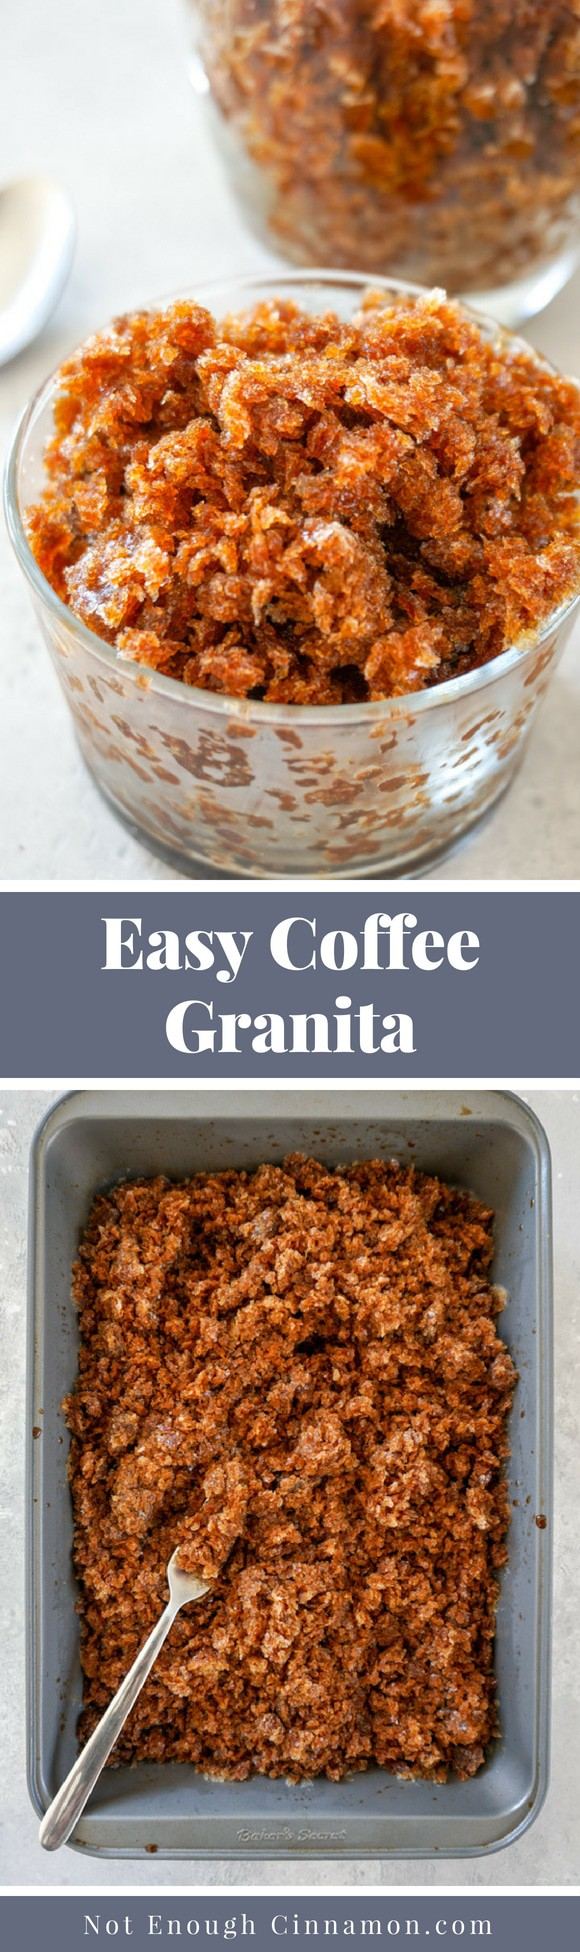 Coffee Granita: an easy pick-me-up summer dessert that you can make with only three ingredients. Refined Sugar Free too! Full step by step recipe on NotEnoughCinnamon.com #summerdessert #lightdessert #frozendessert #healthydessert #paleo #vegan #glutenfree